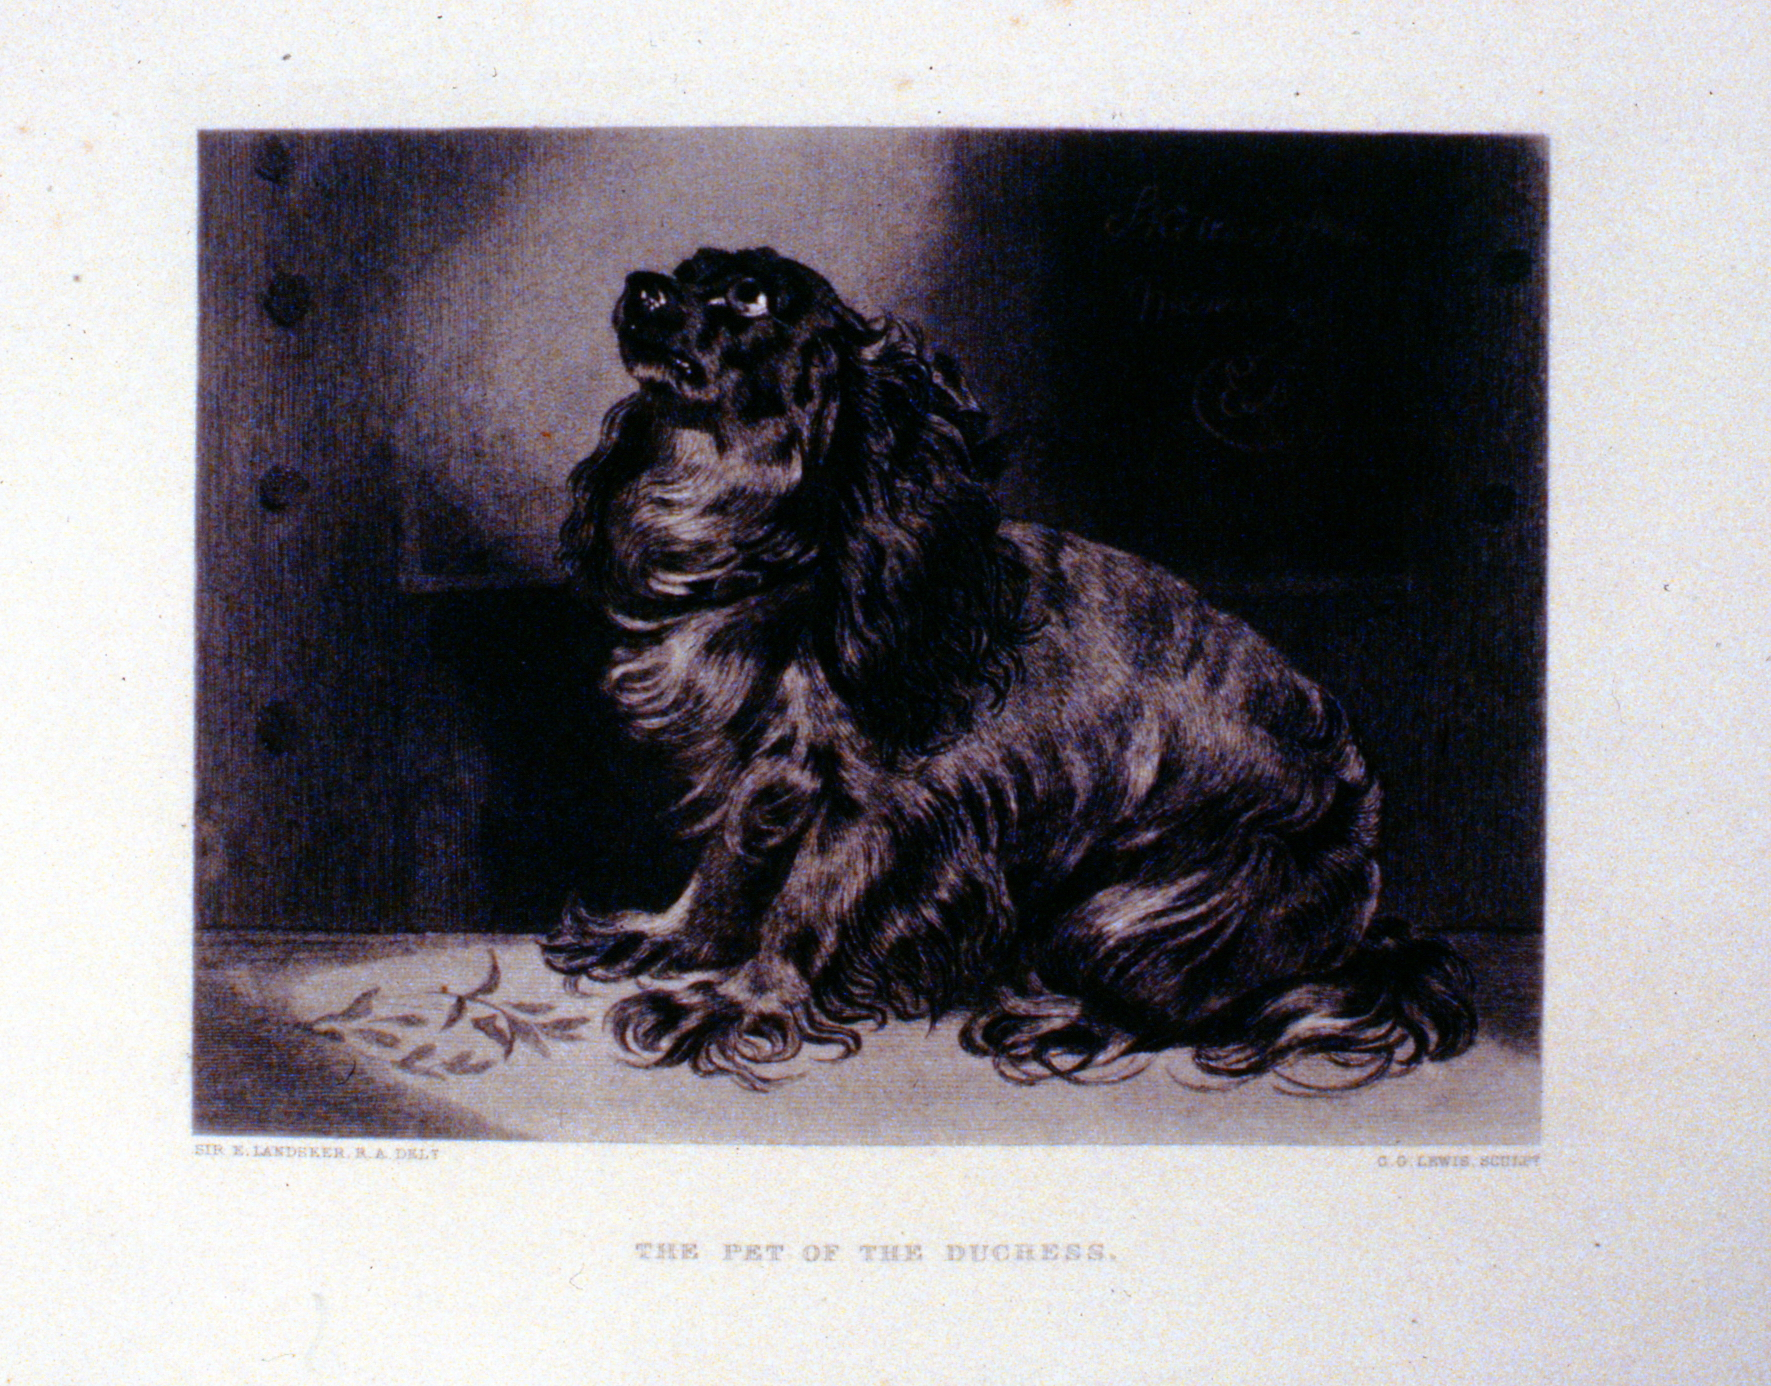 The Pet of the Duchess , c. late 19th Century, Charles G. Lewis, steel engraving, 15.2 cm x 20.4 cm, 1996.08.34, gift of Yvonne Adams